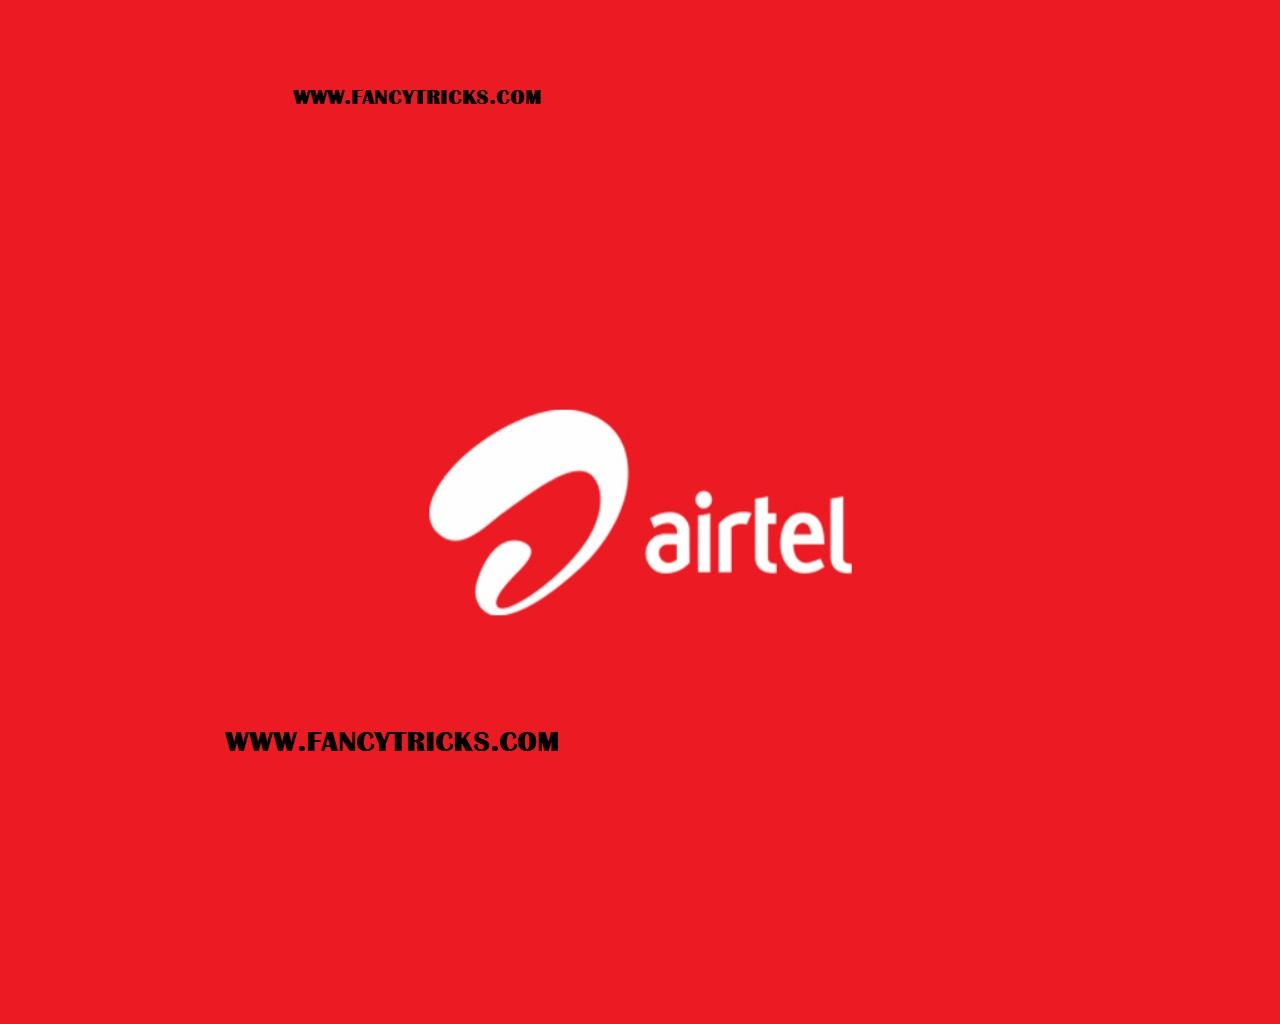 Airtel Free Gprs Tricks August 2013